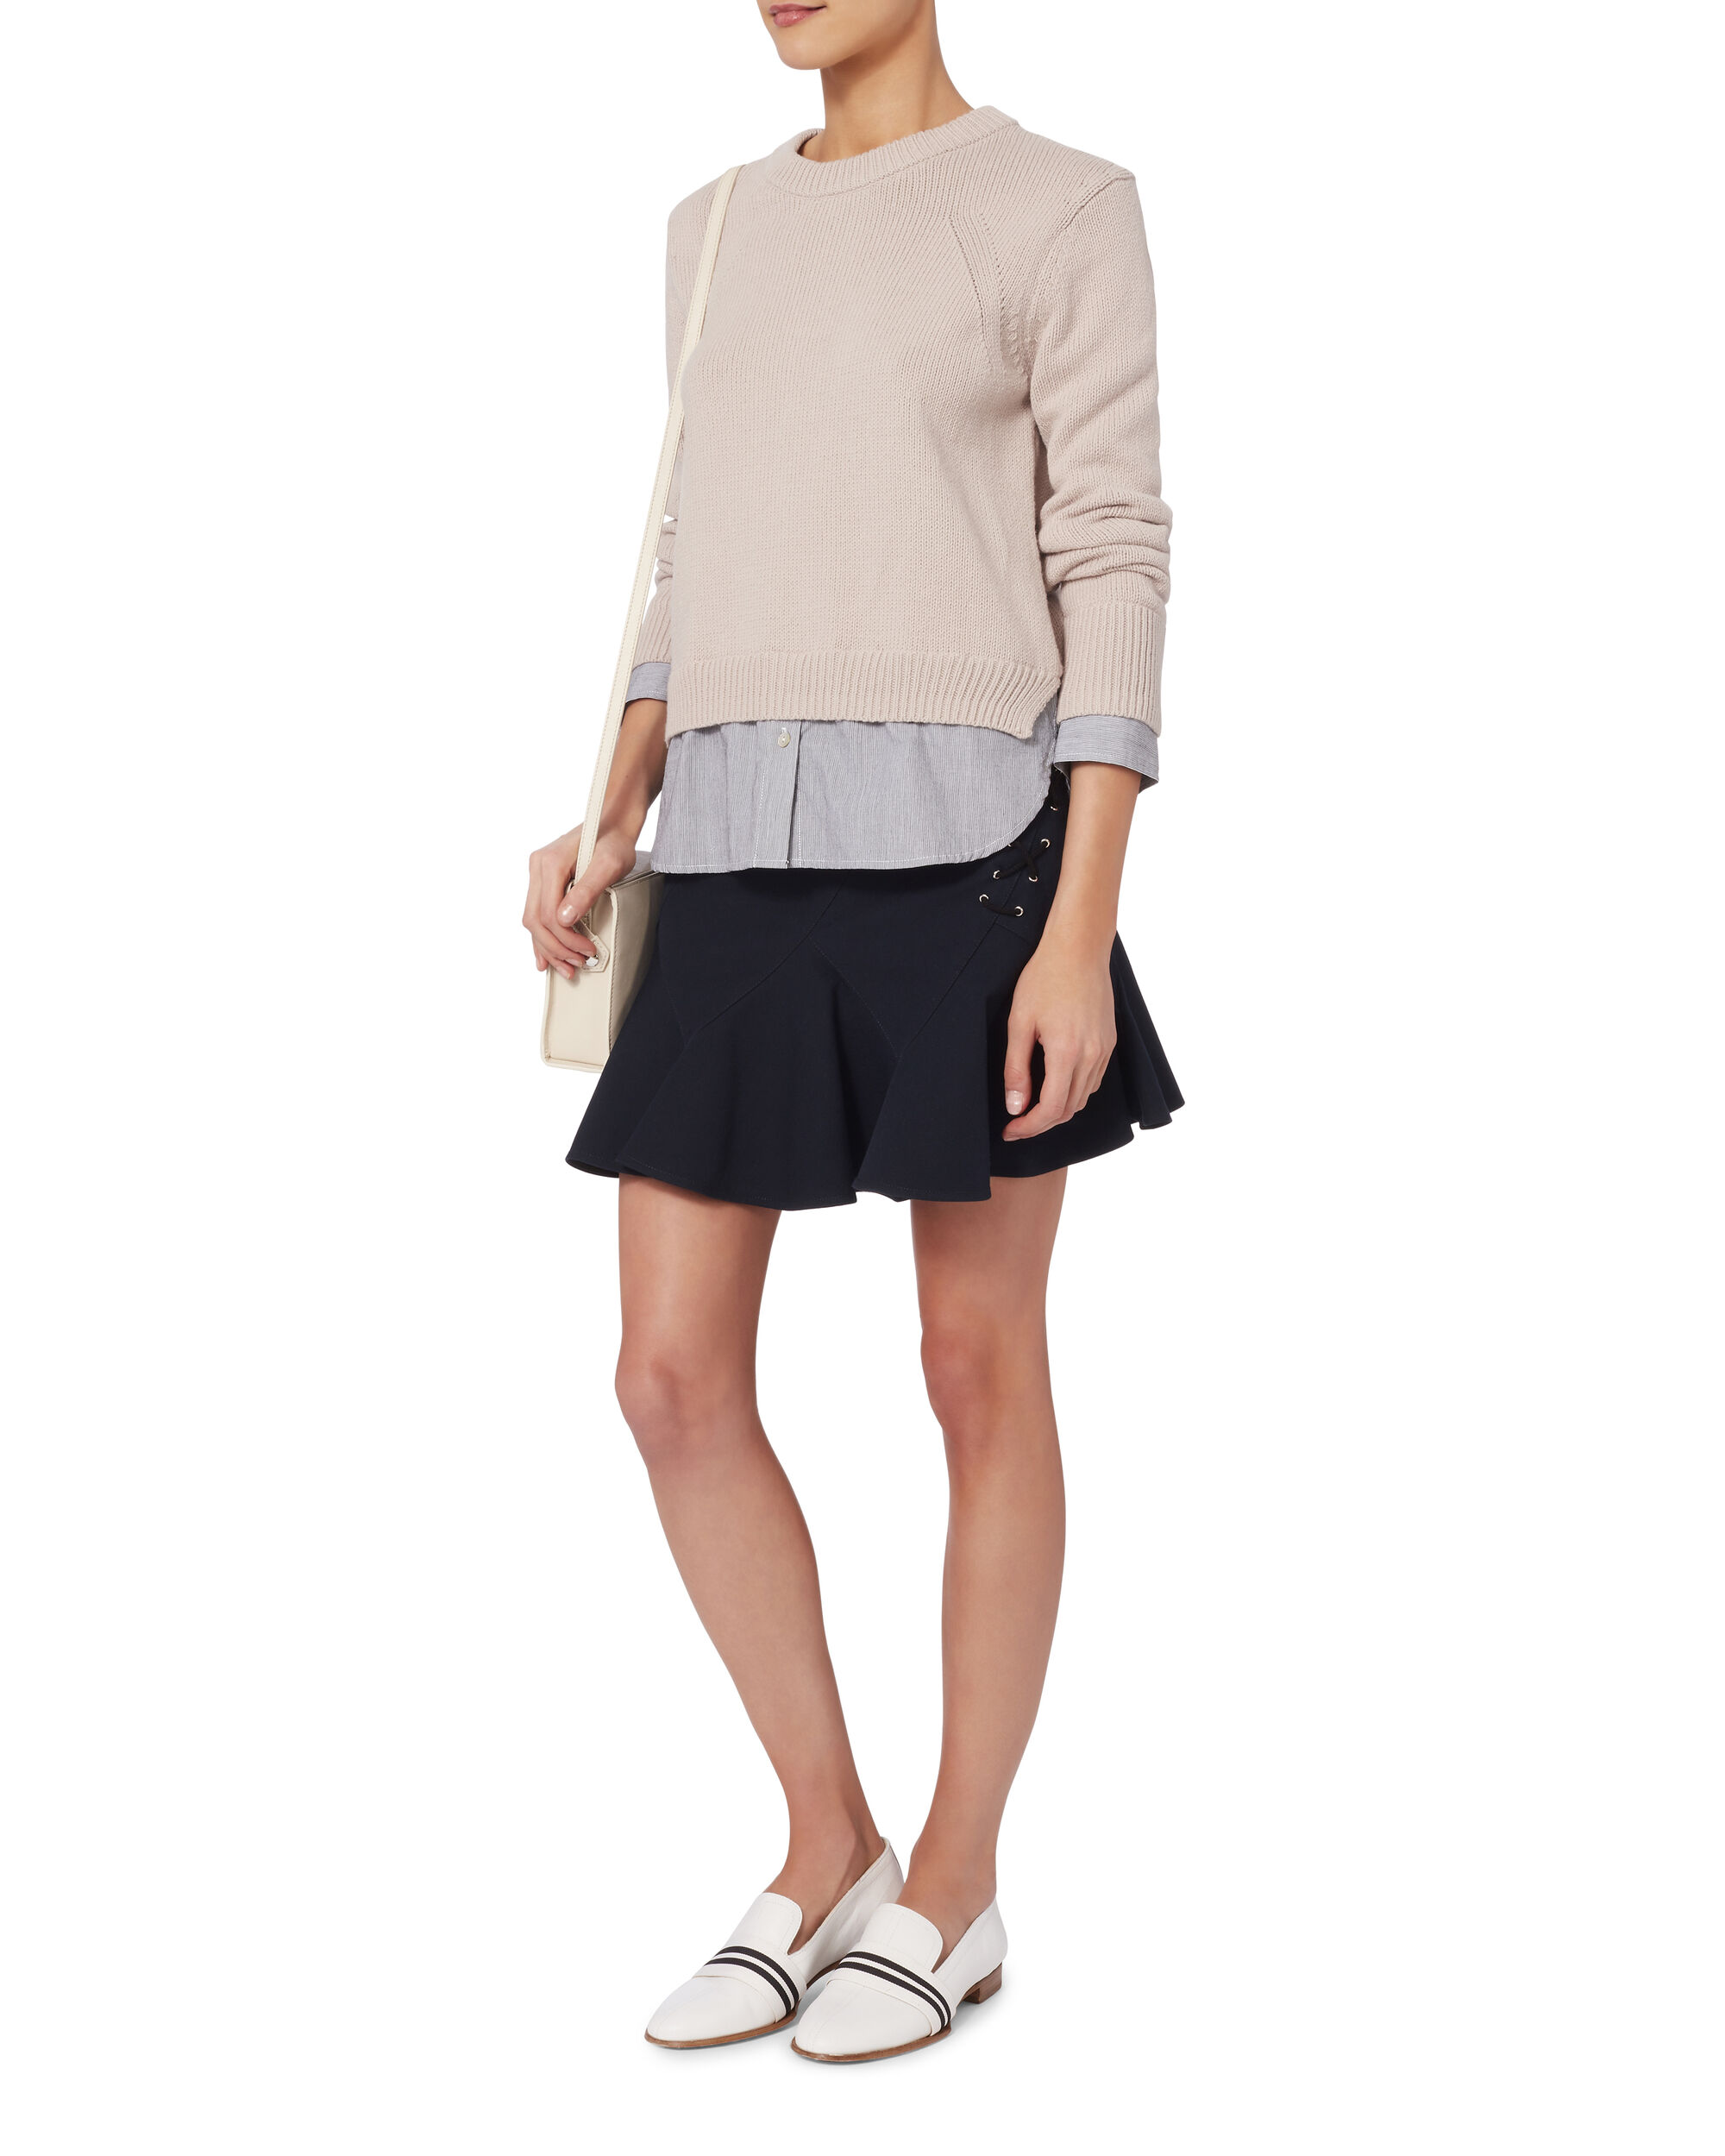 Ashland Layered Pullover Sweater, PINK, hi-res